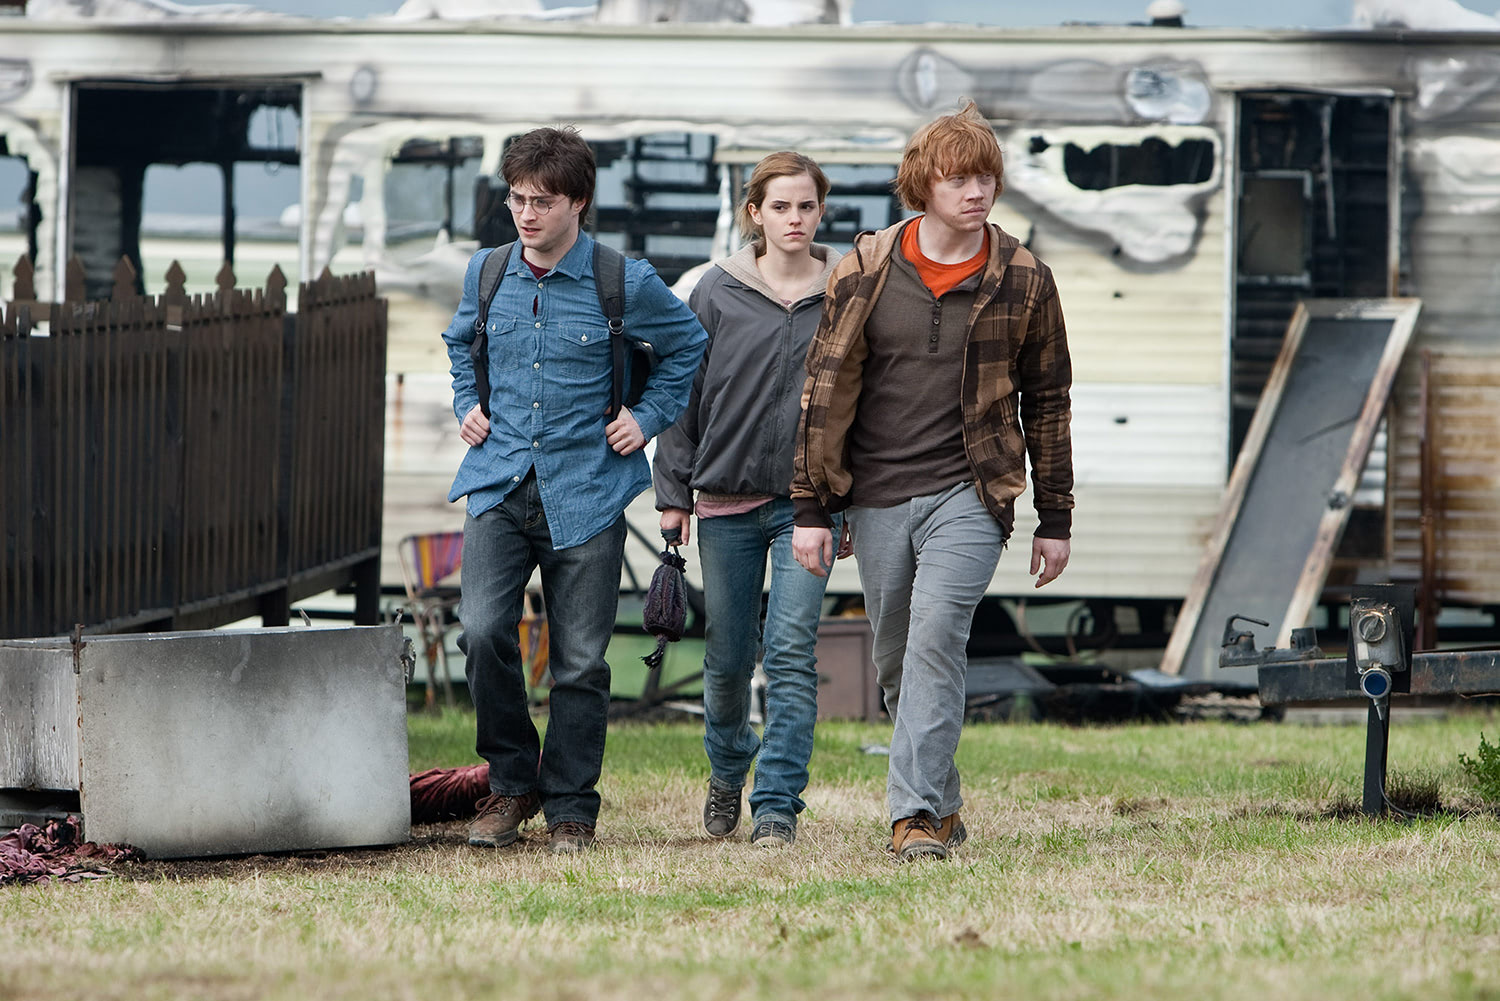 Harry, Ron and Hermione in one of the film's camping scenes